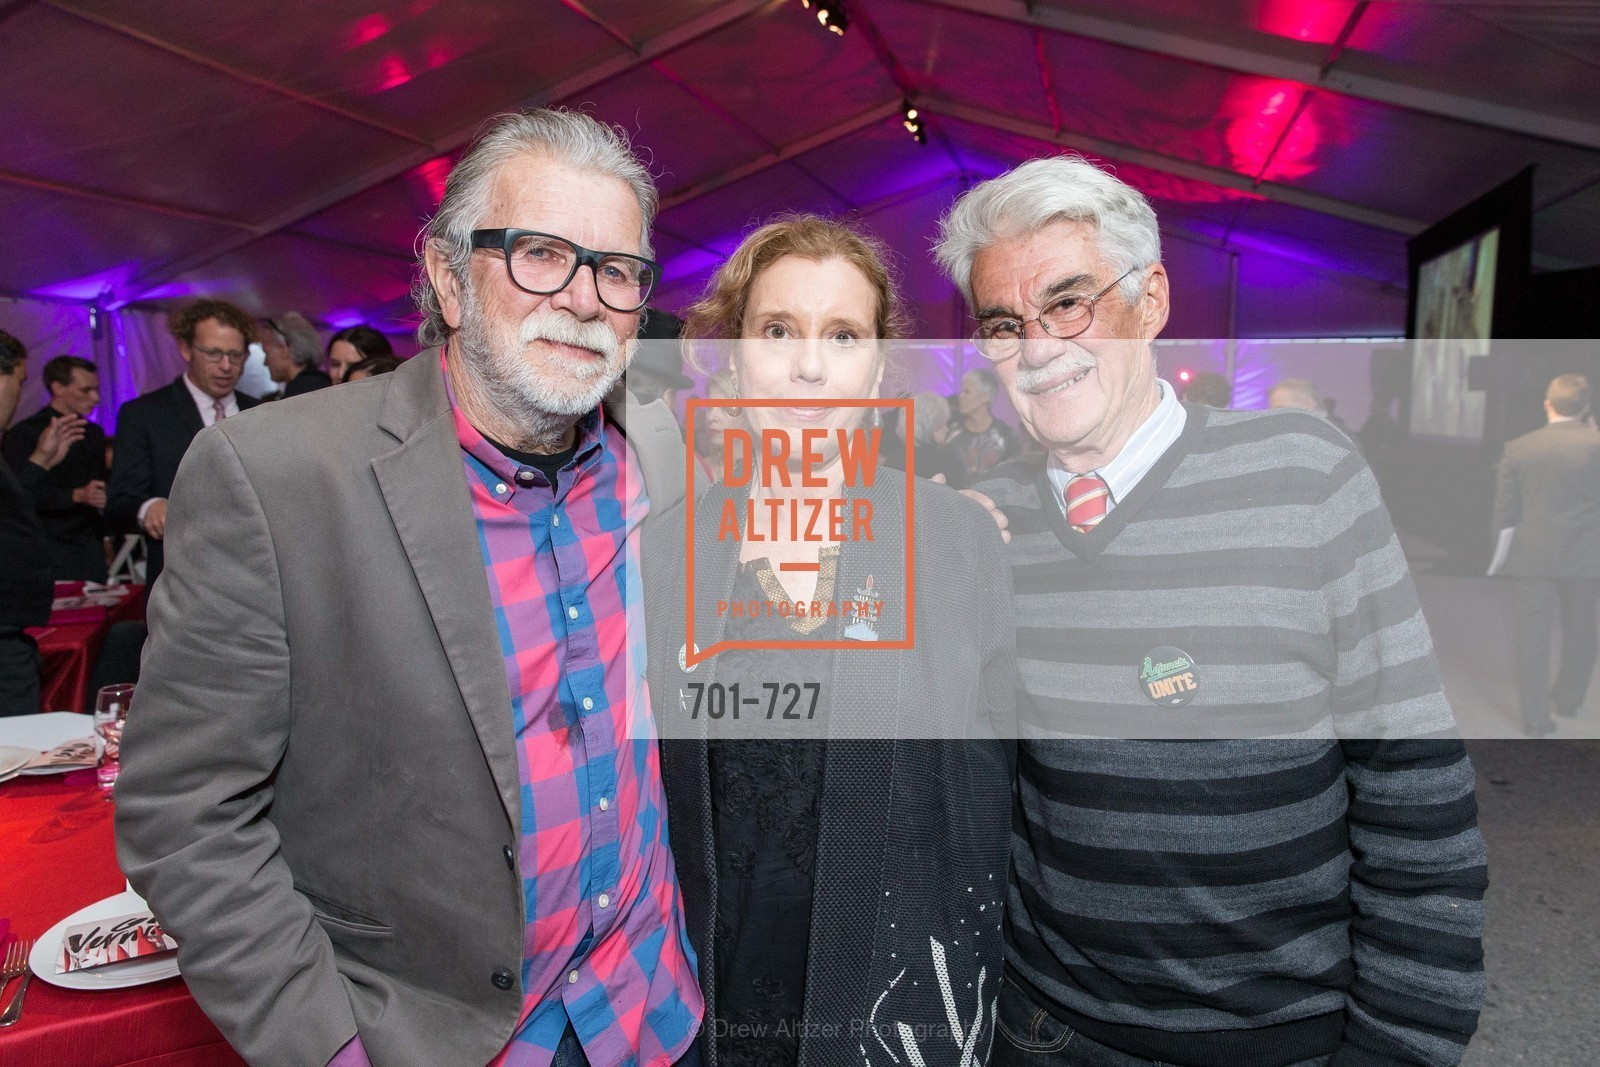 Robert Hudson, Mary Hull Webster, Richard Shaw, SAN FRANCISCO ART INSTITUTE Gala Honoring Art Visionary and Advocate ROSELYNE CHROMAN SWIG, US, May 13th, 2015,Drew Altizer, Drew Altizer Photography, full-service agency, private events, San Francisco photographer, photographer california